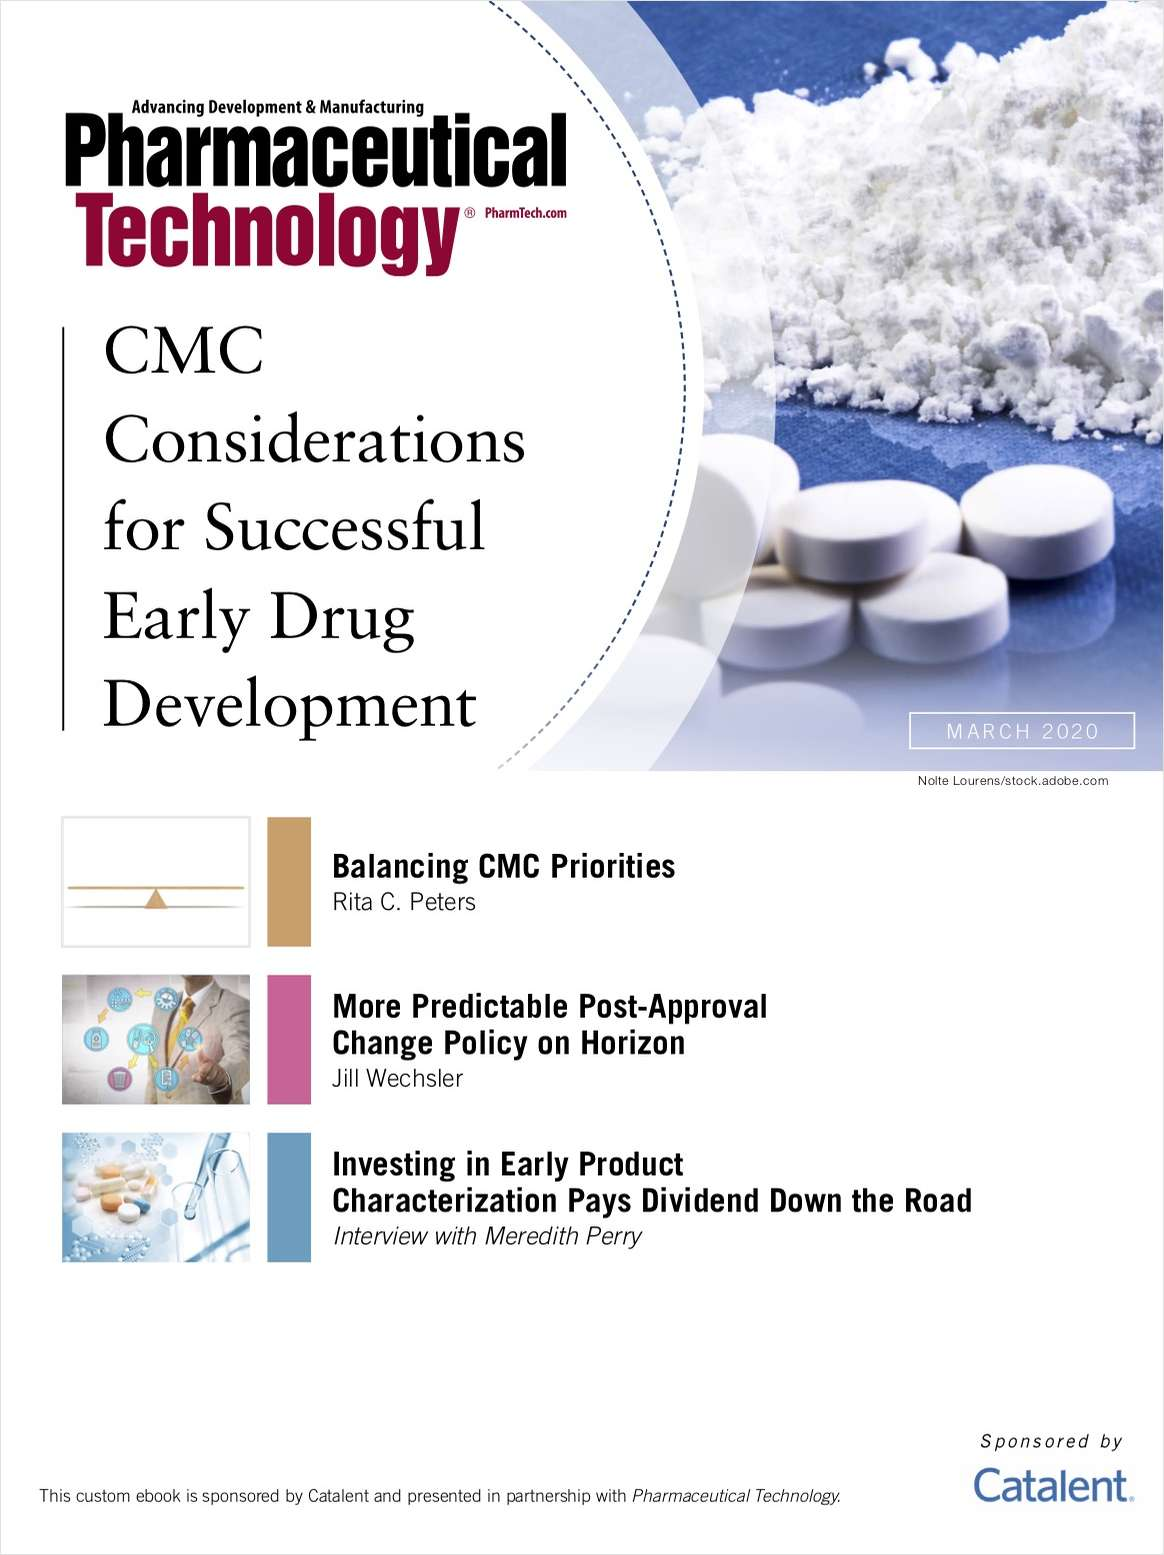 CMC Considerations for Successful Early Drug Development